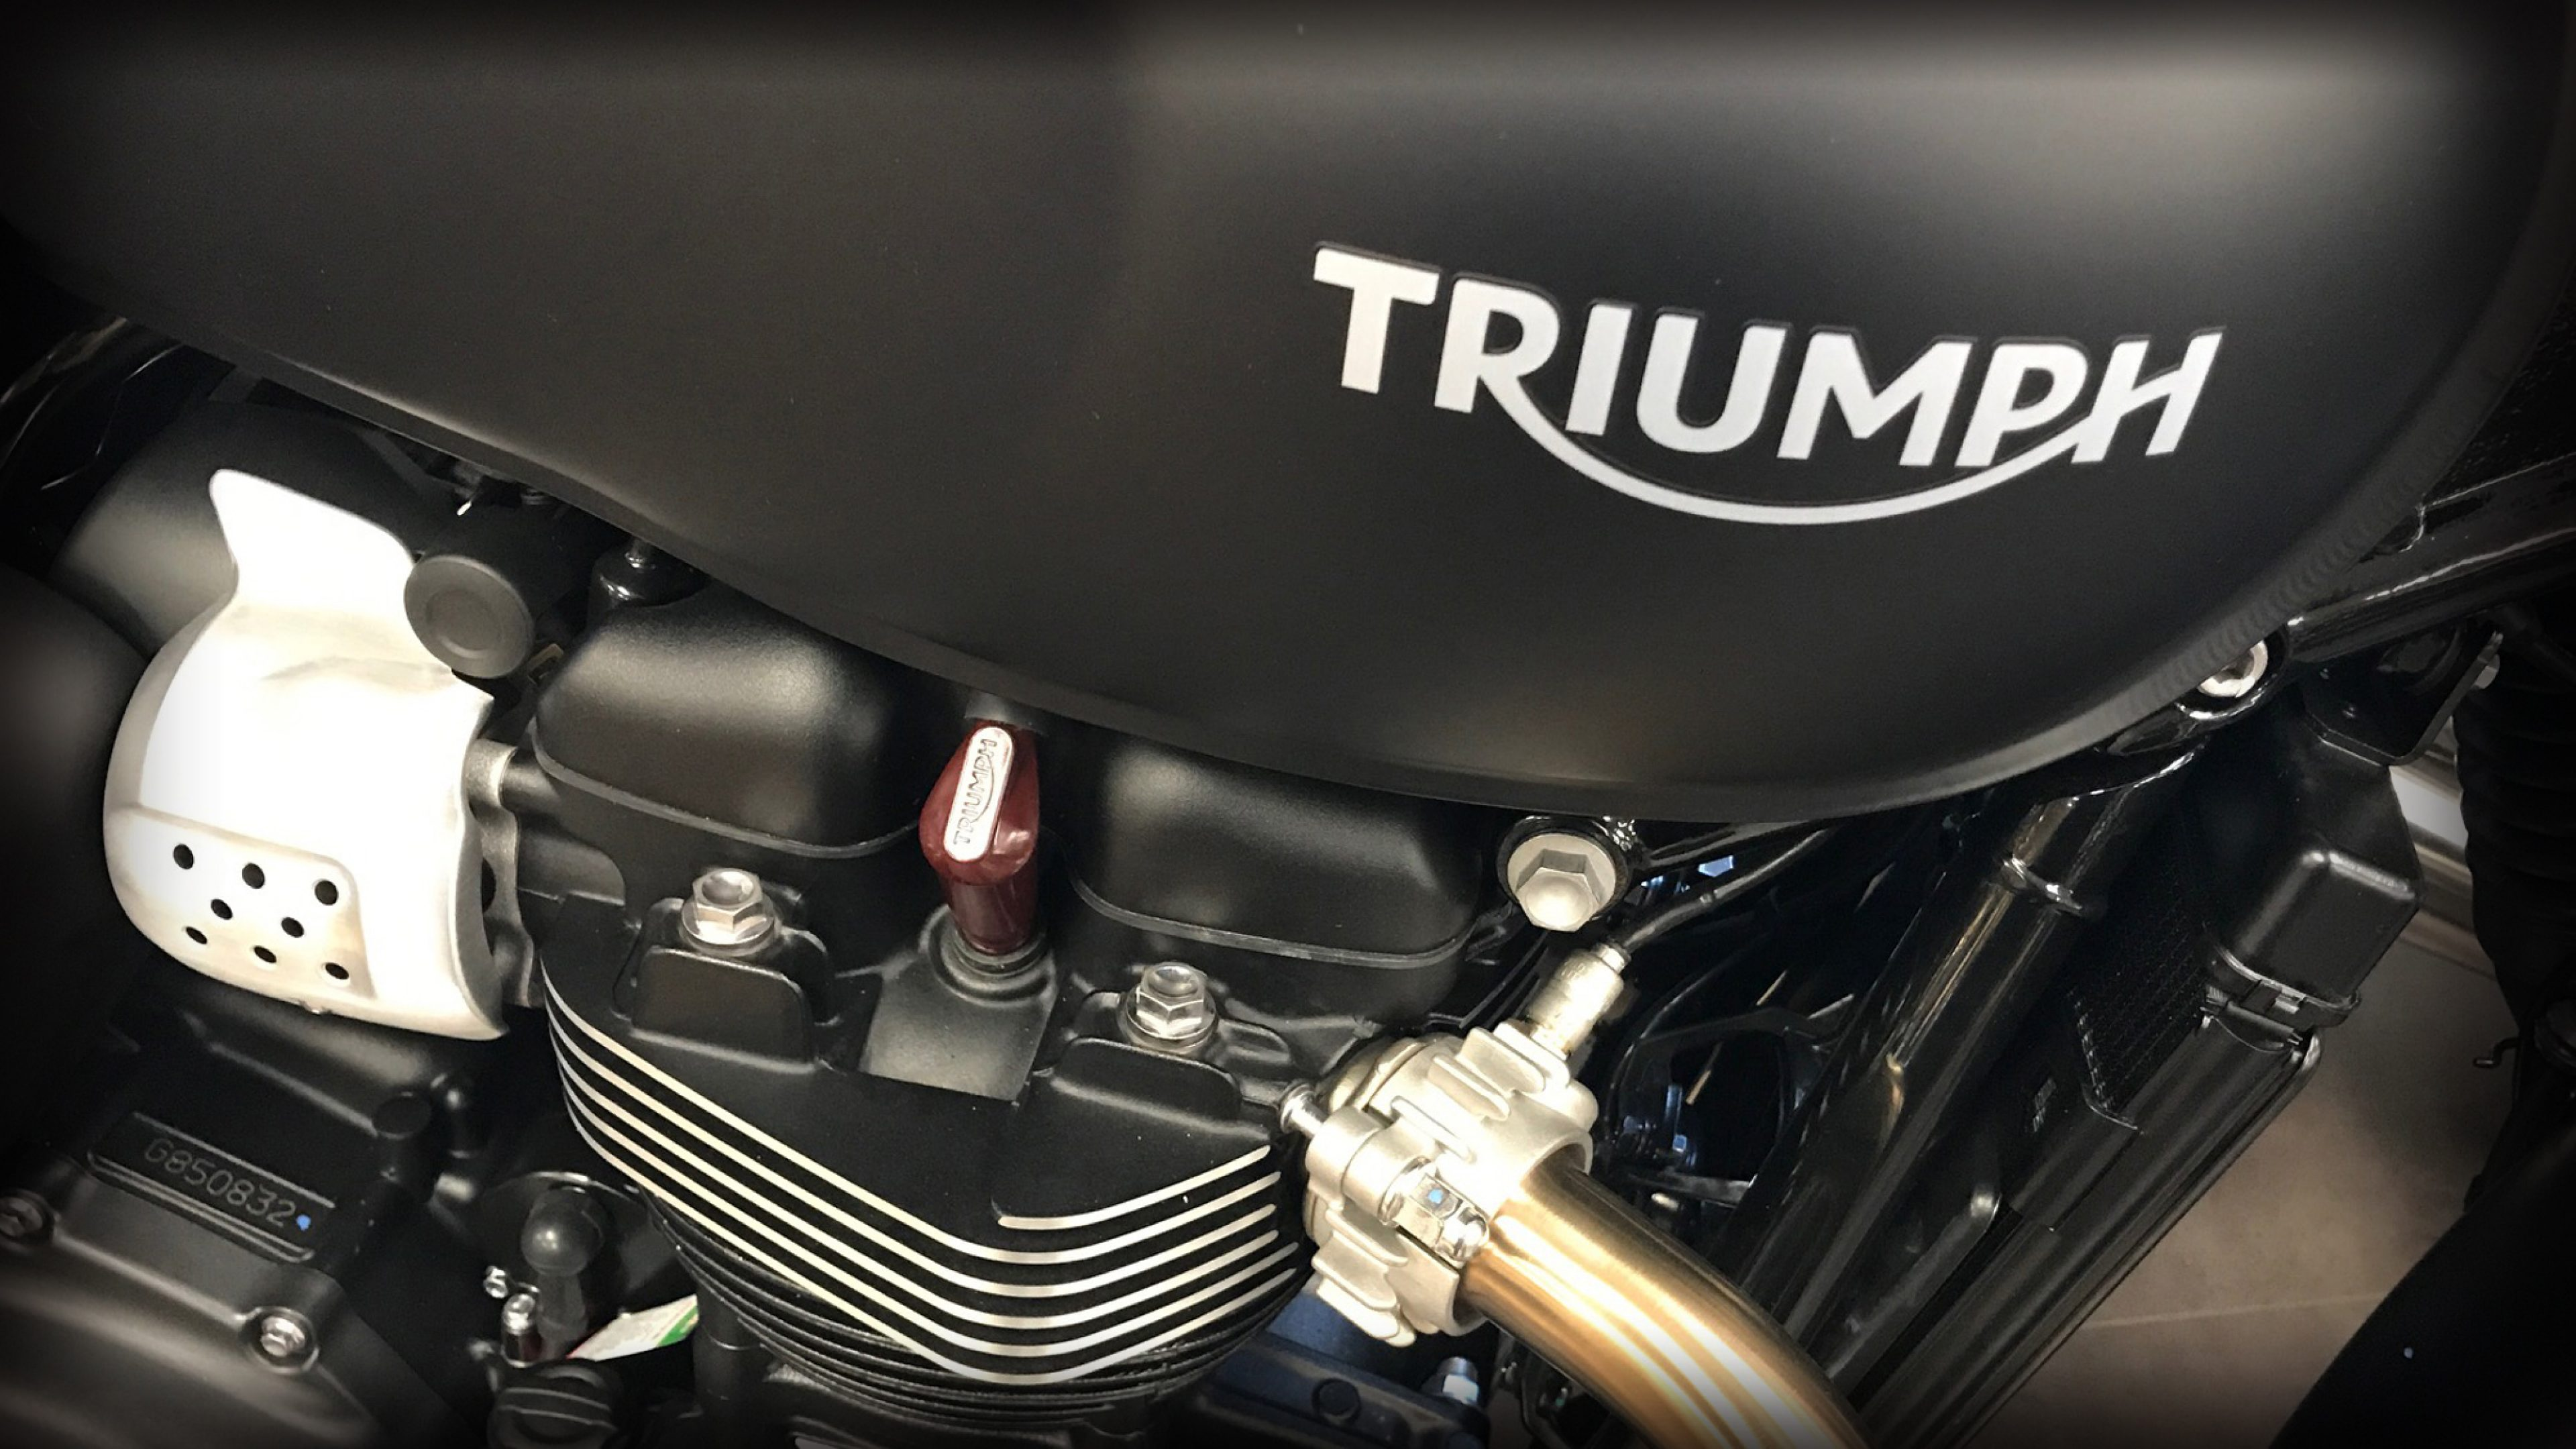 Triumph Partnership